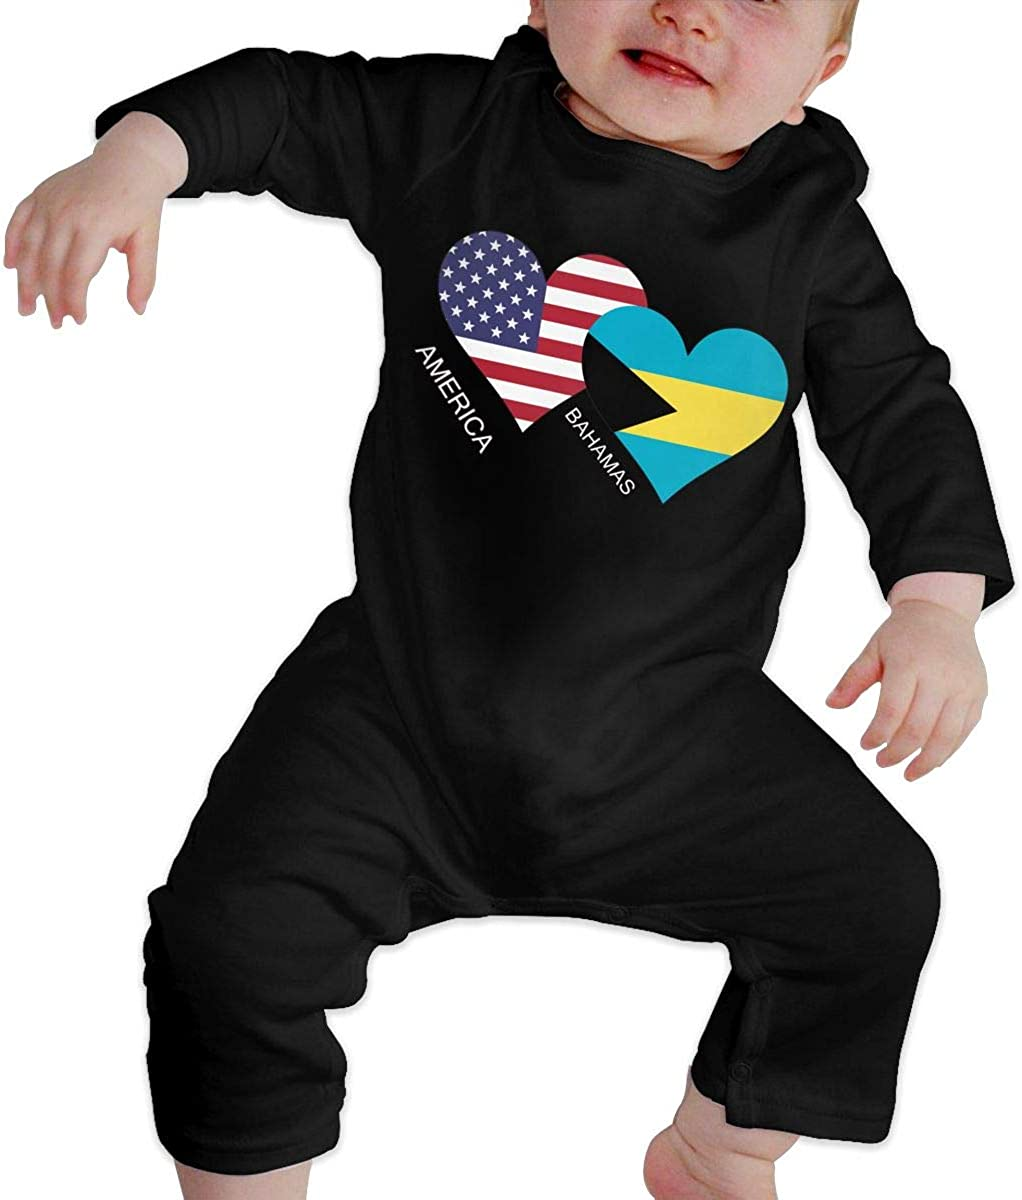 America Bahamas Flag Heart Organic One-Piece Bodysuits Coverall Outfits BKNGDG8Q Unisex Baby Romper Jumpsuit